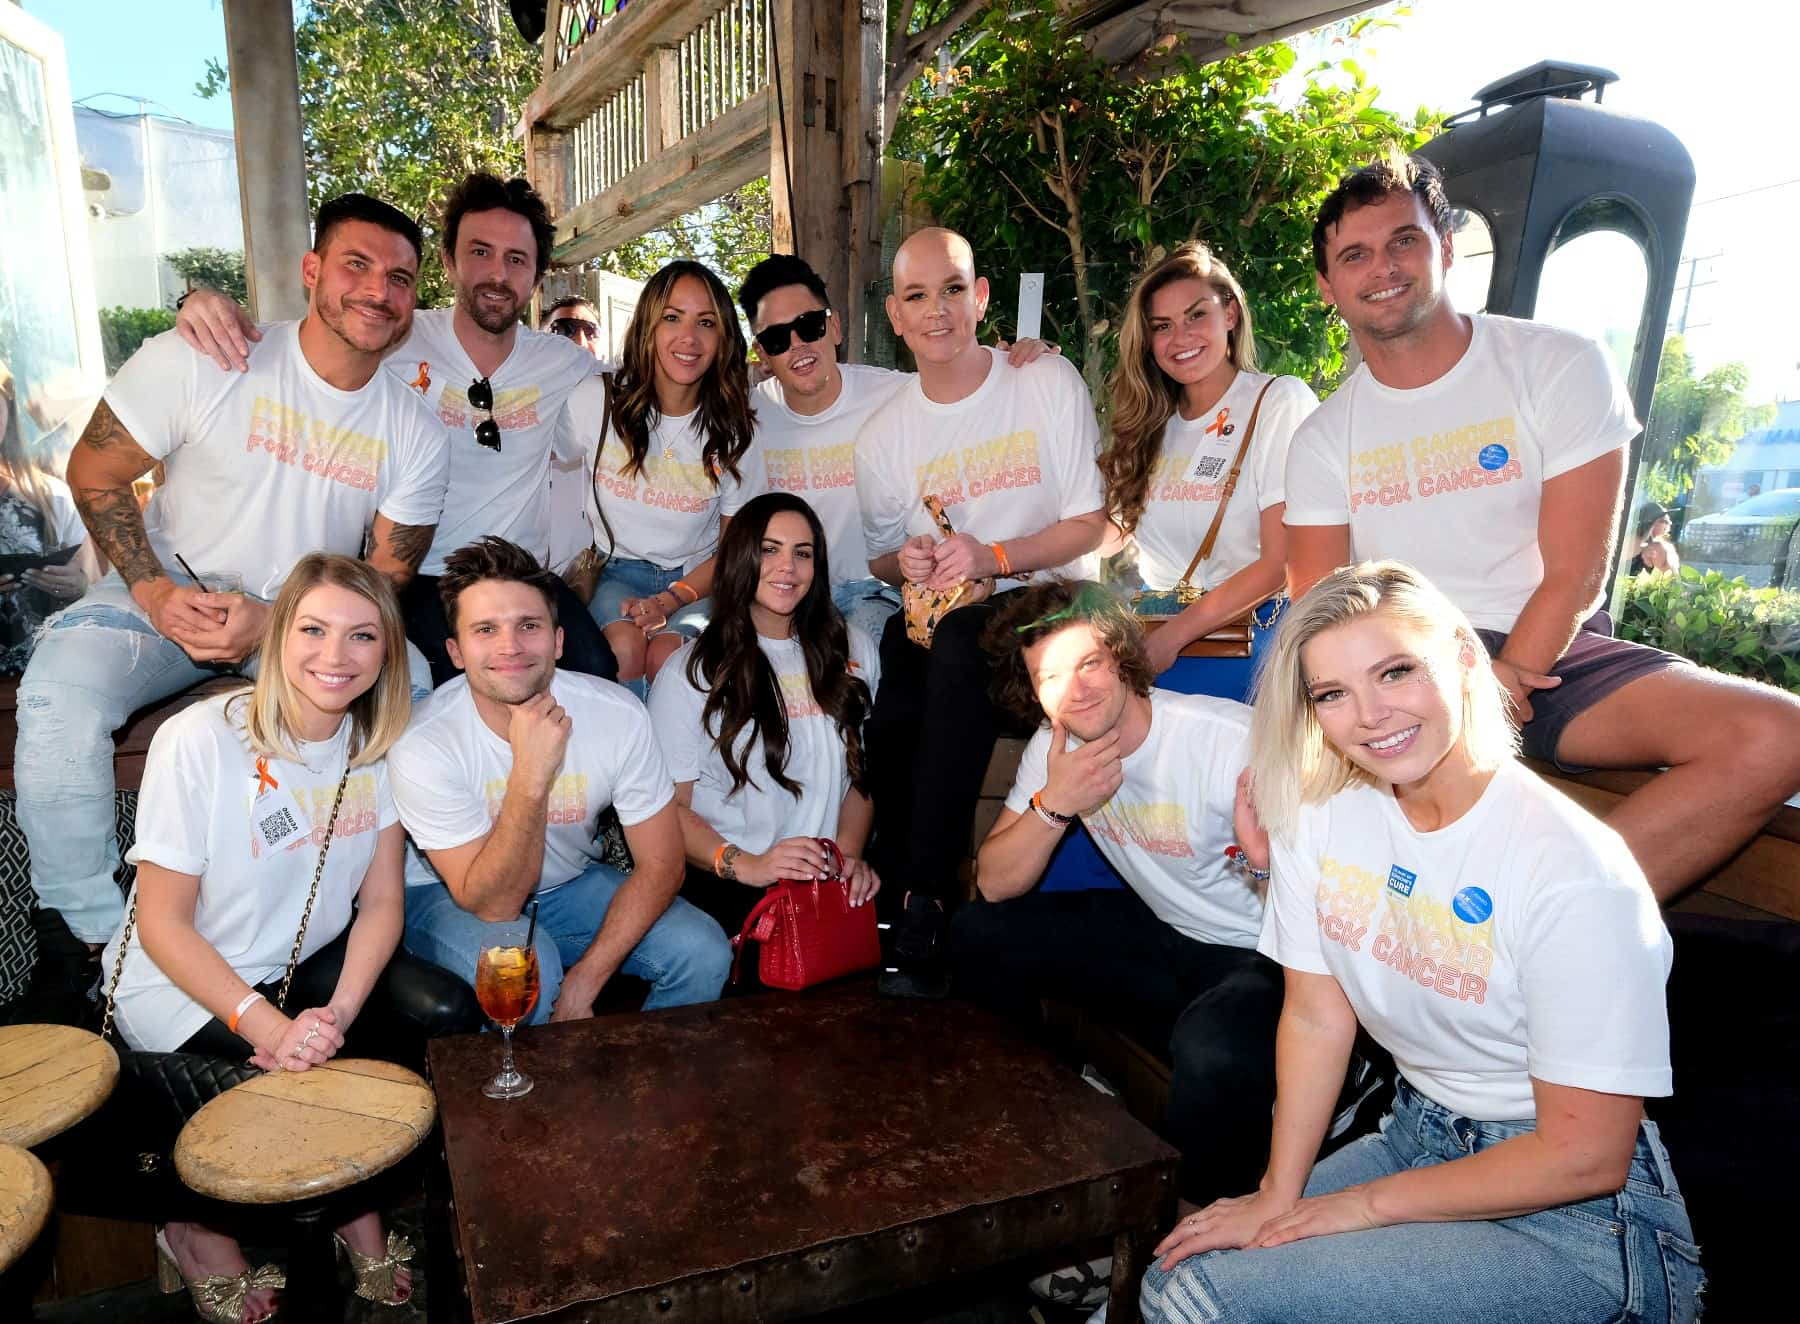 Vanderpump Rules Cast Raises Money for Their Friend Battling Leukemia, See Pics as They Come Together for a Good Cause